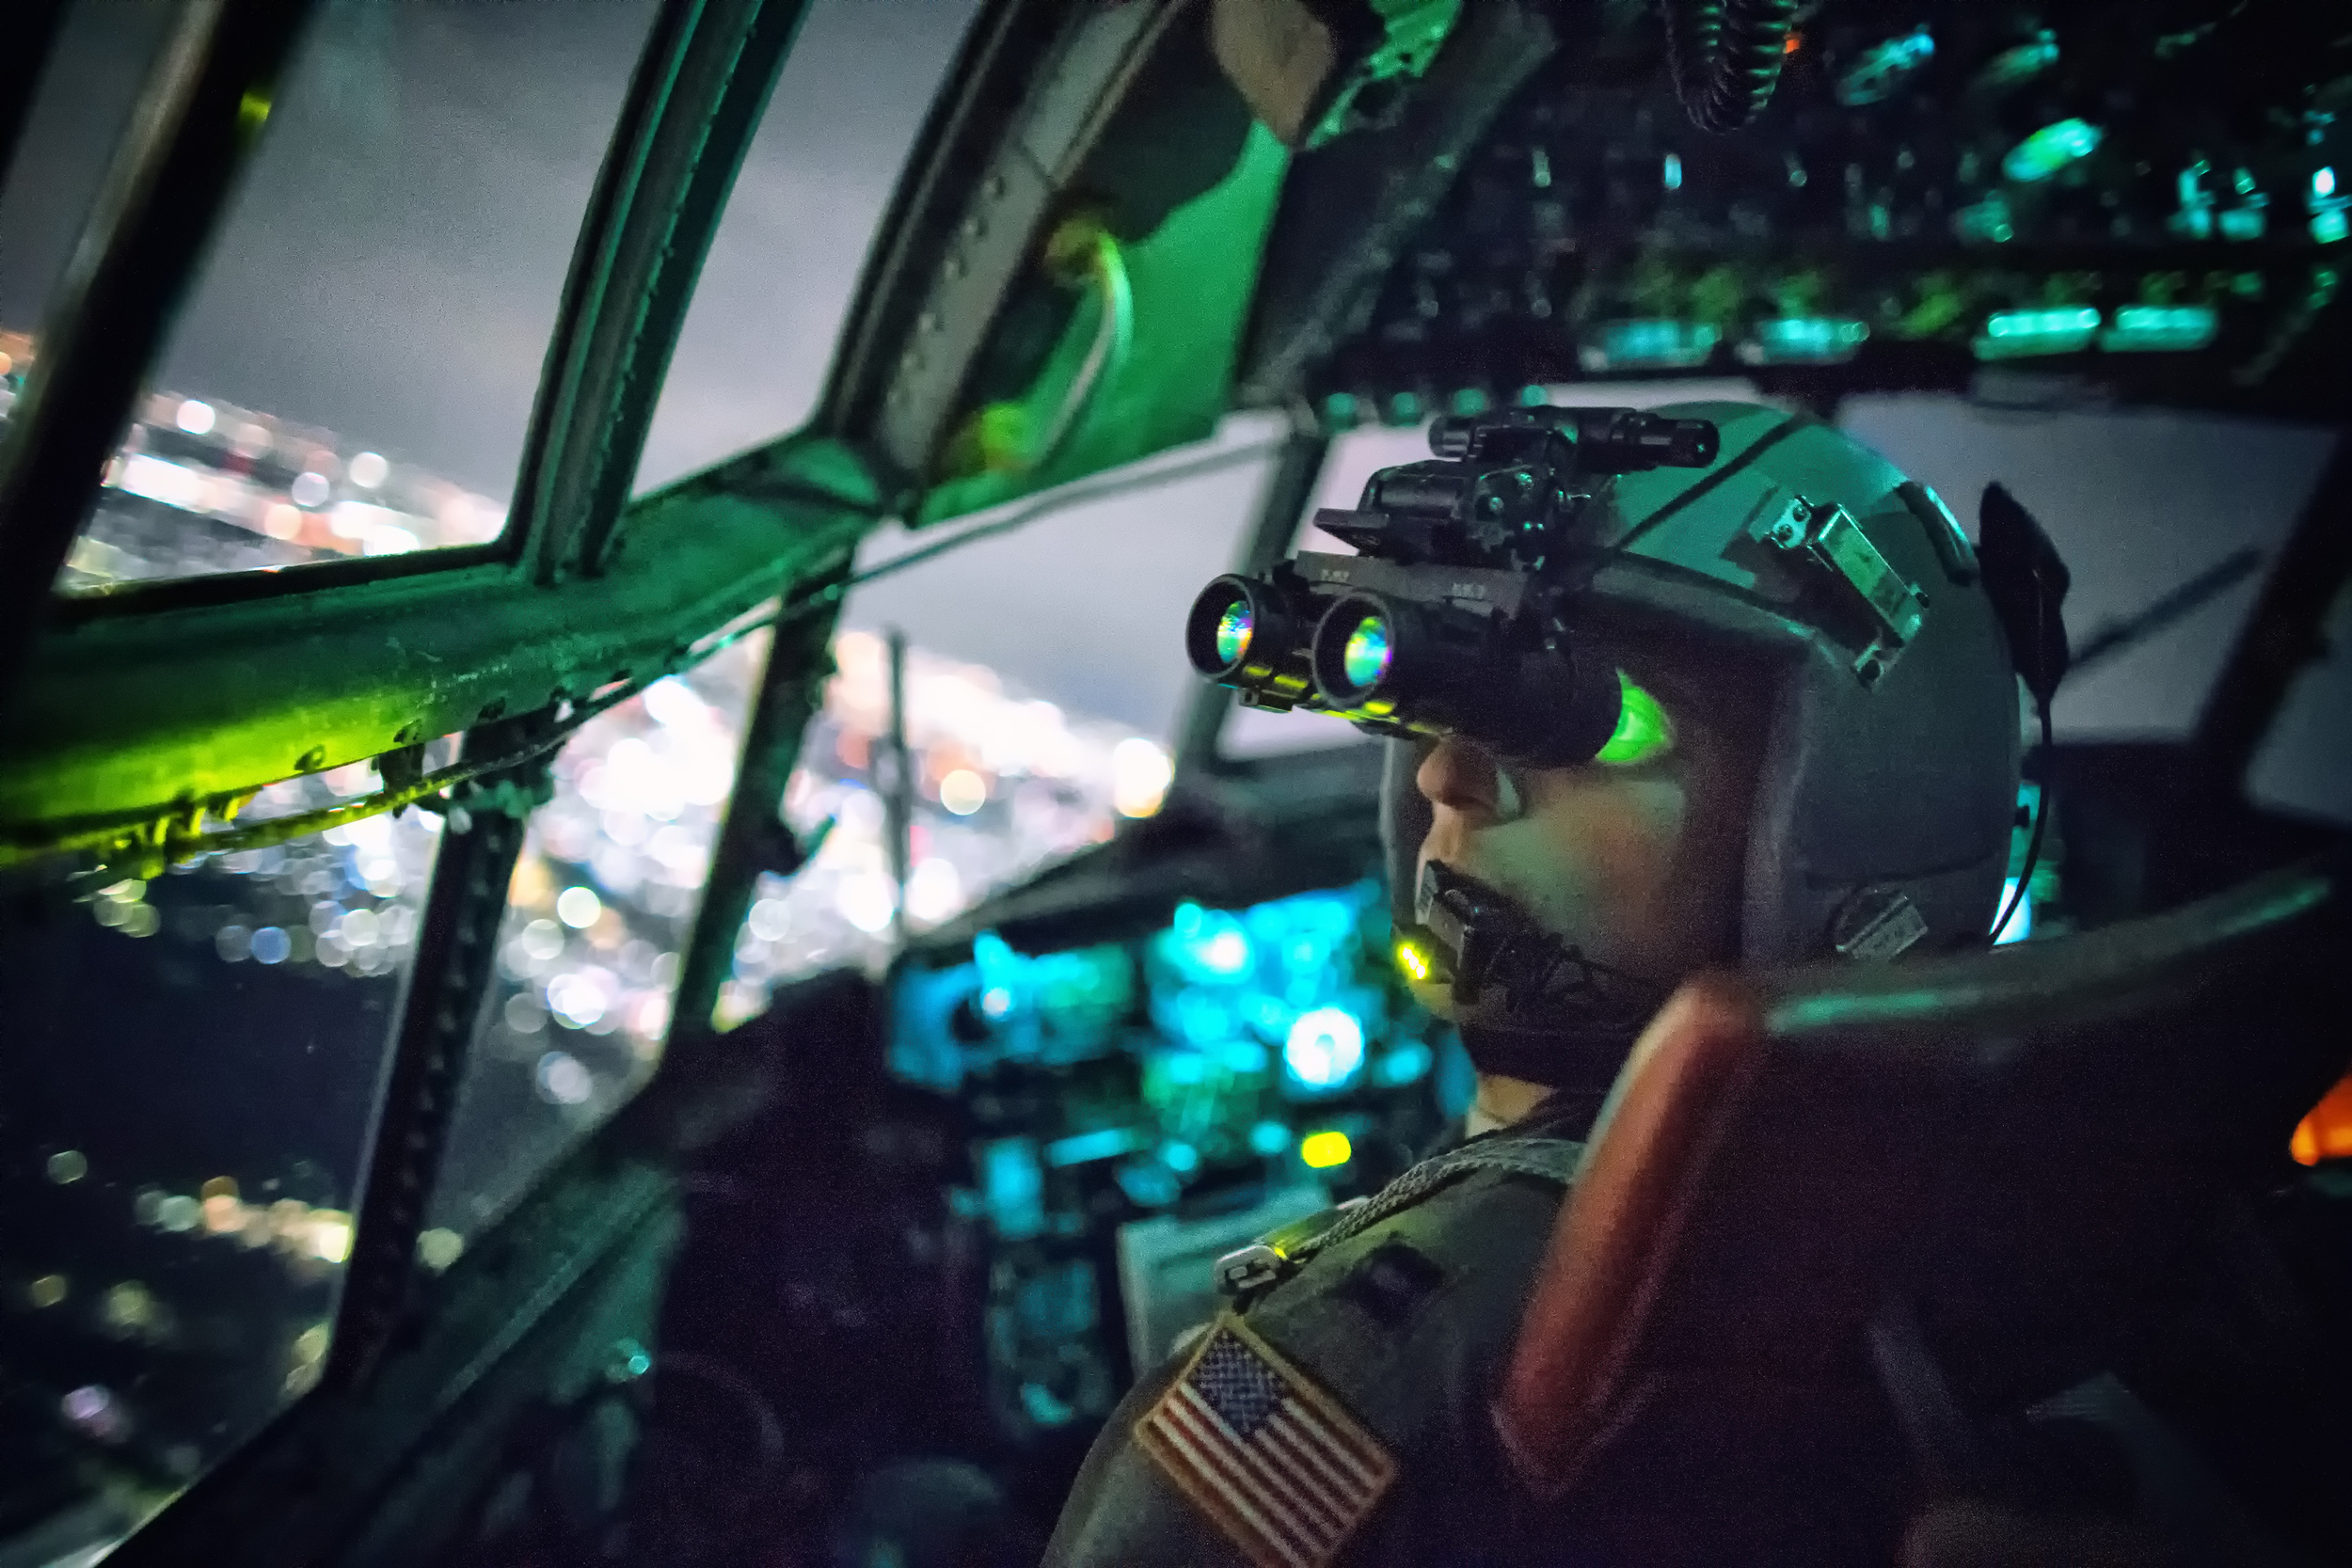 Capt. Thomas Bernard, 36th Airlift Squadron C-130 Hercules pilot, performs a visual confirmation with a night vision goggle during a training mission over Kanto Plane, Japan, Oct. 14, 2015. Yokota aircrews regularly conduct night flying operations to ensure they're prepared to respond to a variety of contingencies throughout the Indo-Asia Pacific region. (U.S. Air Force photo by Osakabe Yasuo/Released)